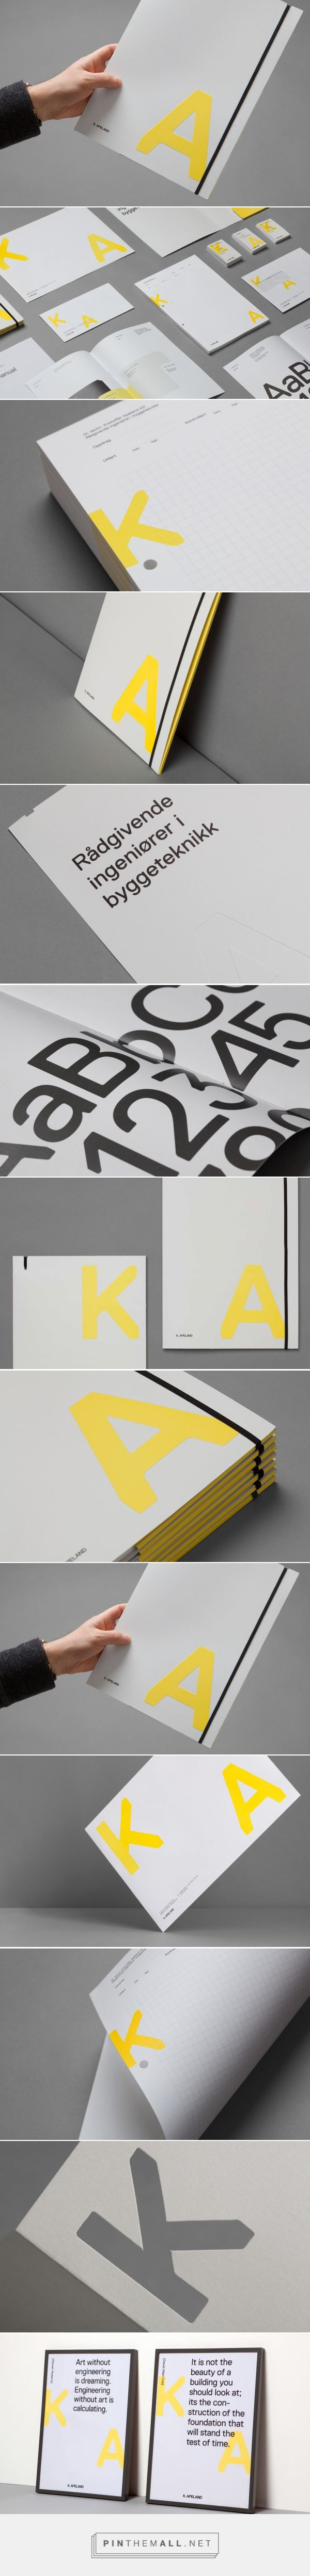 New Brand Identity for K. Apeland by Bielke&Yang — BP&O... - a grouped images picture - Pin Them All